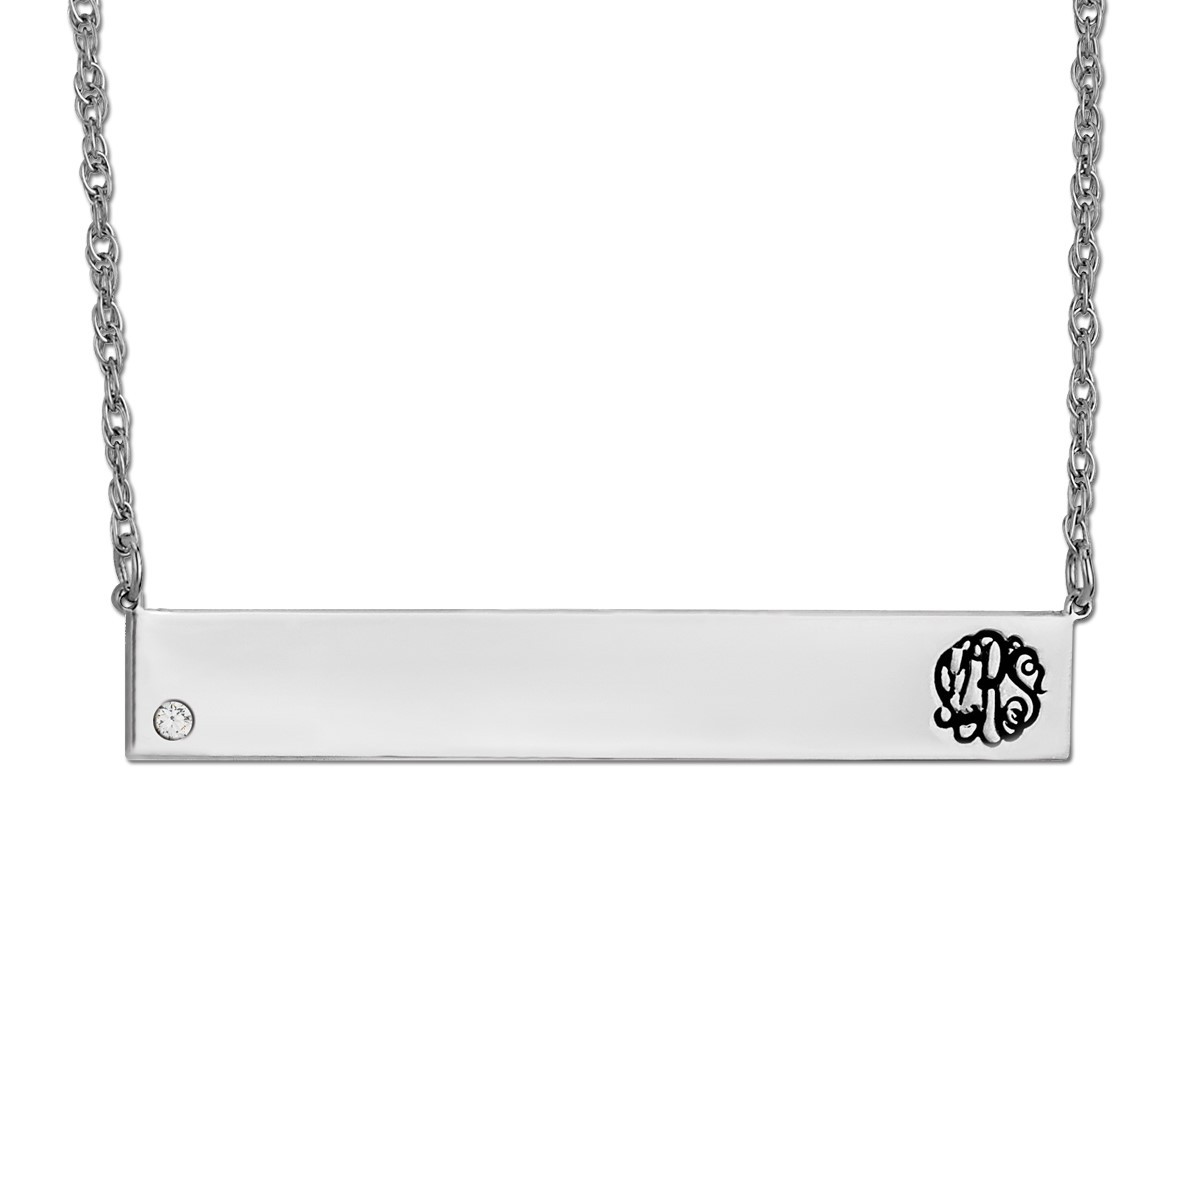 40mm X 7mm BAR PENDANT W/ DIA-LEFT